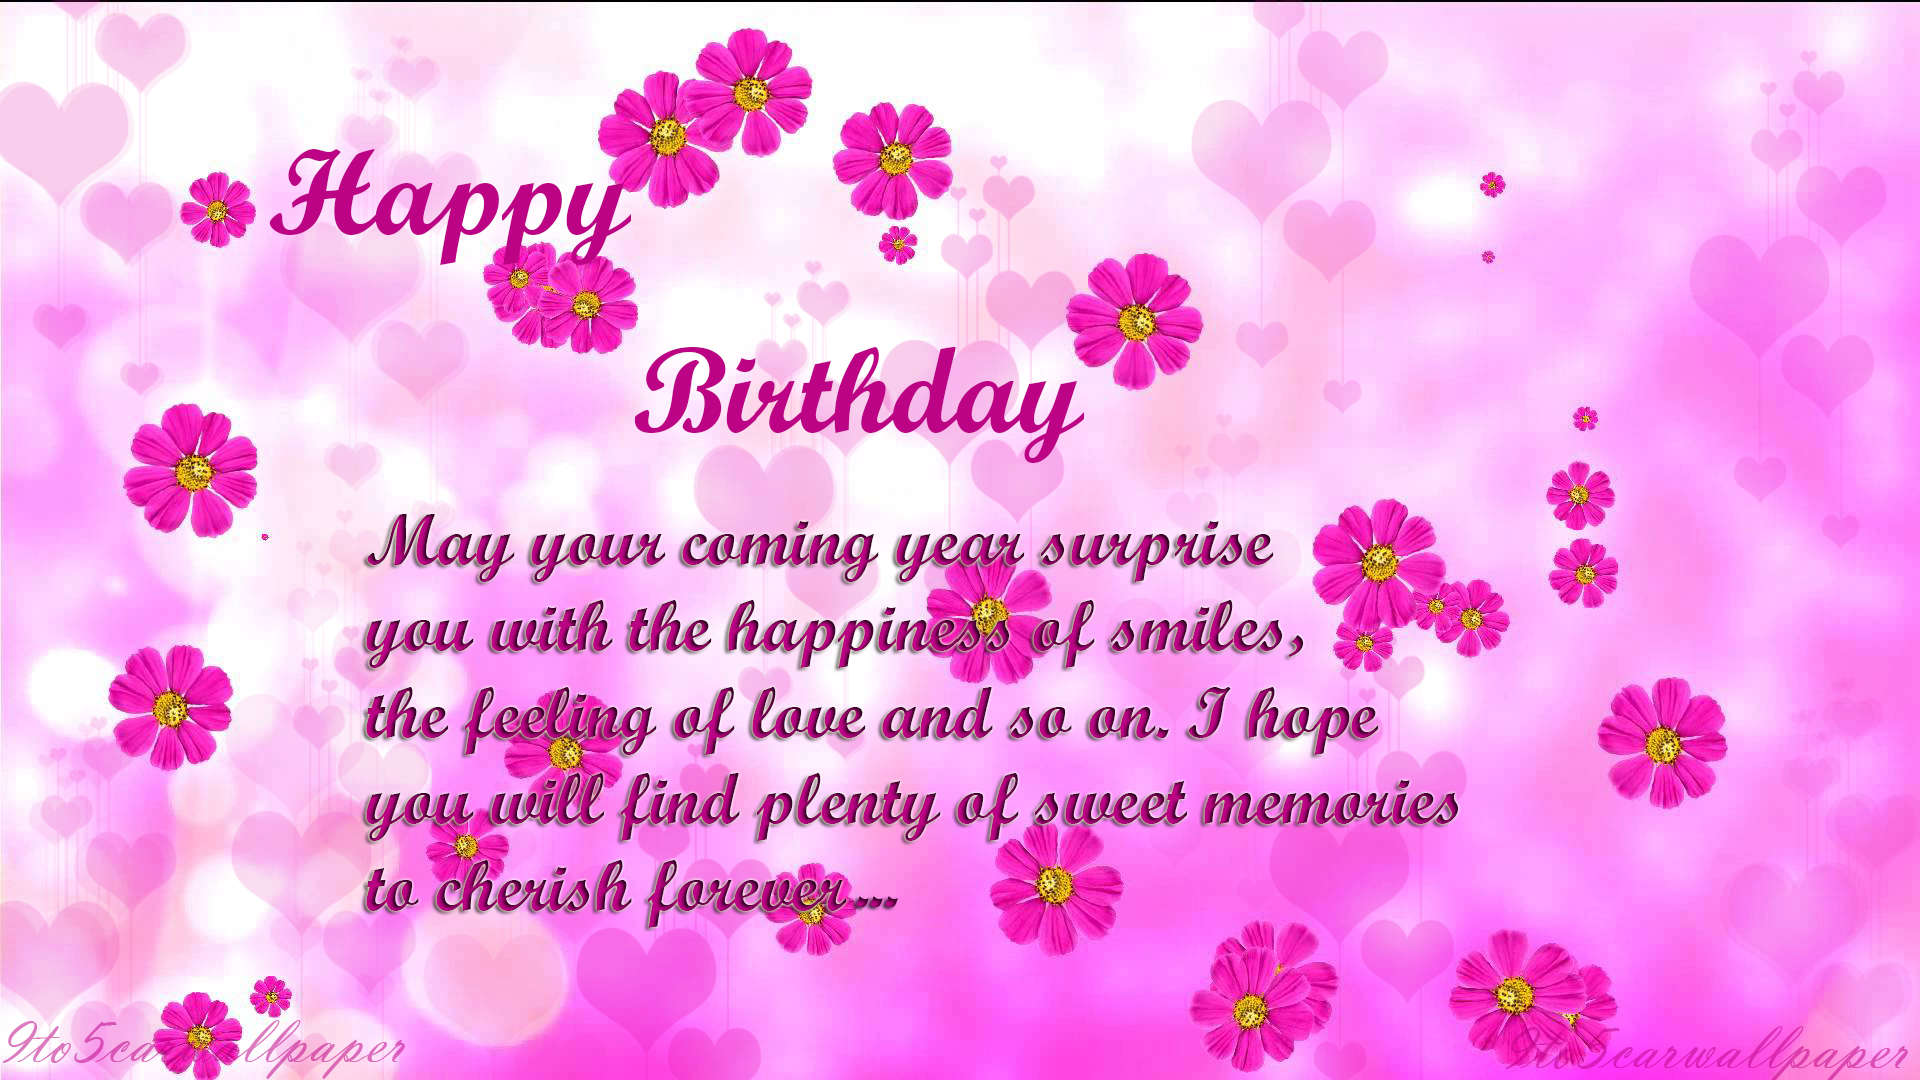 happy birthday wallpaper with quotes ; happy-birthday-quotes-hd-wallpapers-images-2017